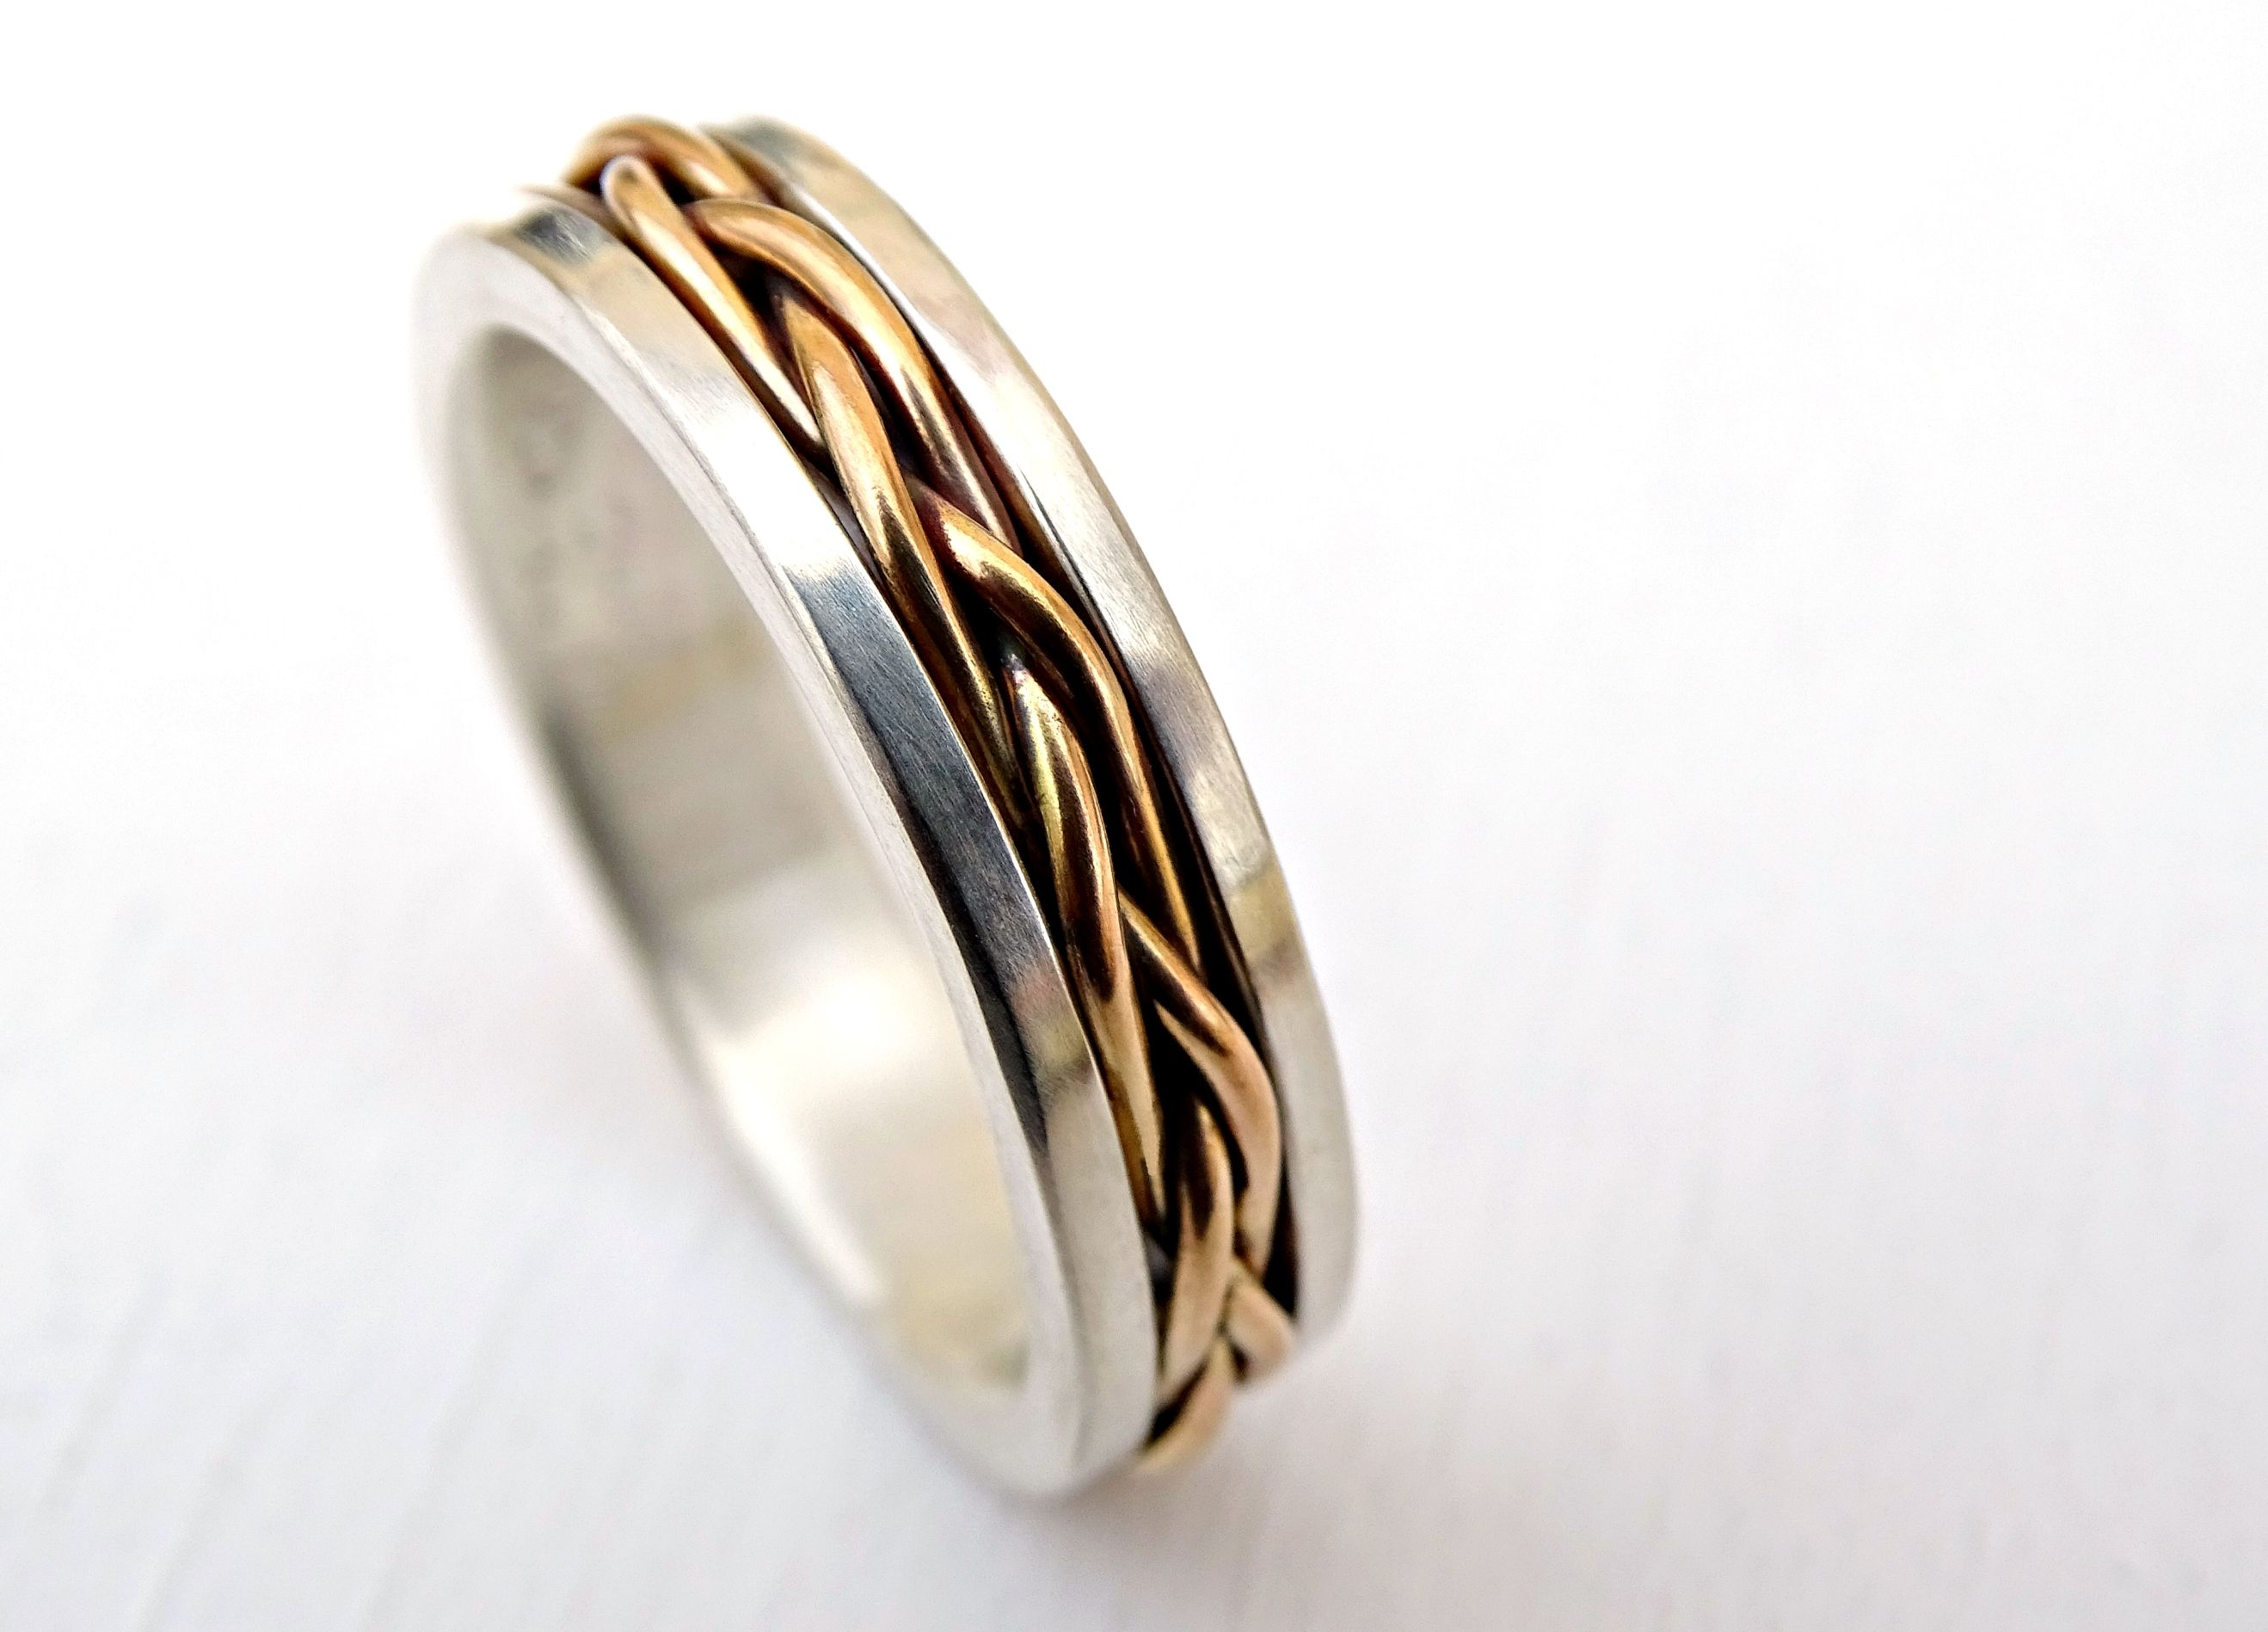 rikof infinity ceremony lovely awesome com idea ring durable band mens tantalum of for gay rings luxury wedding bands